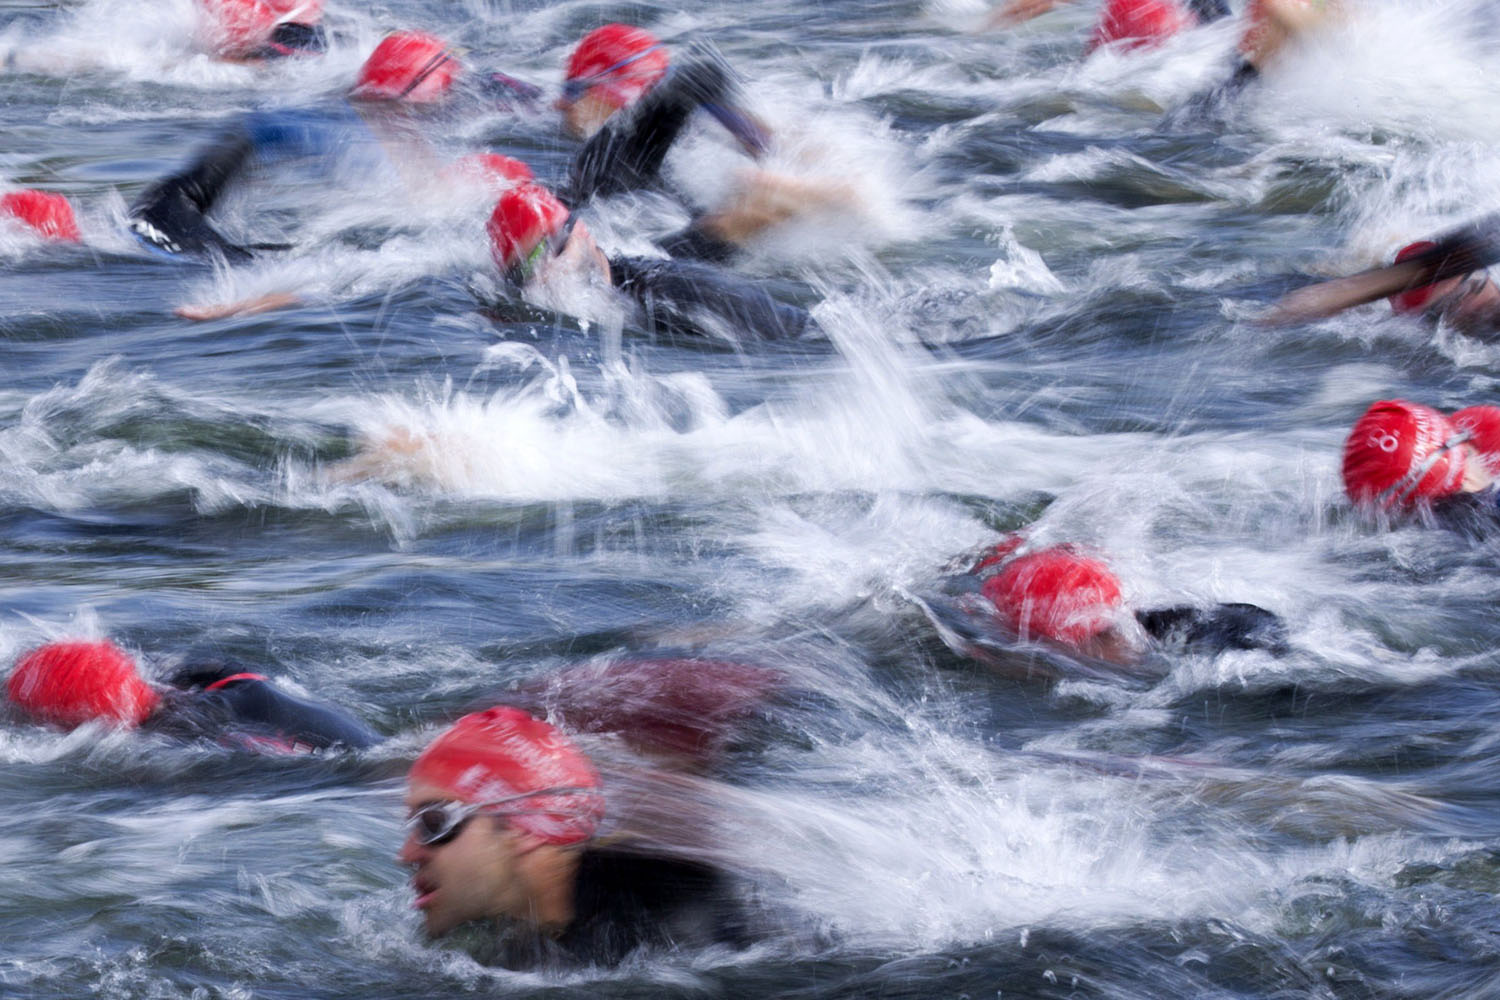 June 1, 2014. Competitors in the open race over the Olympic distance in the World Triathlon London, the fourth event in the 2014 ITU World Triathlon Series, swim through the Serpentine in Hyde Park, London.